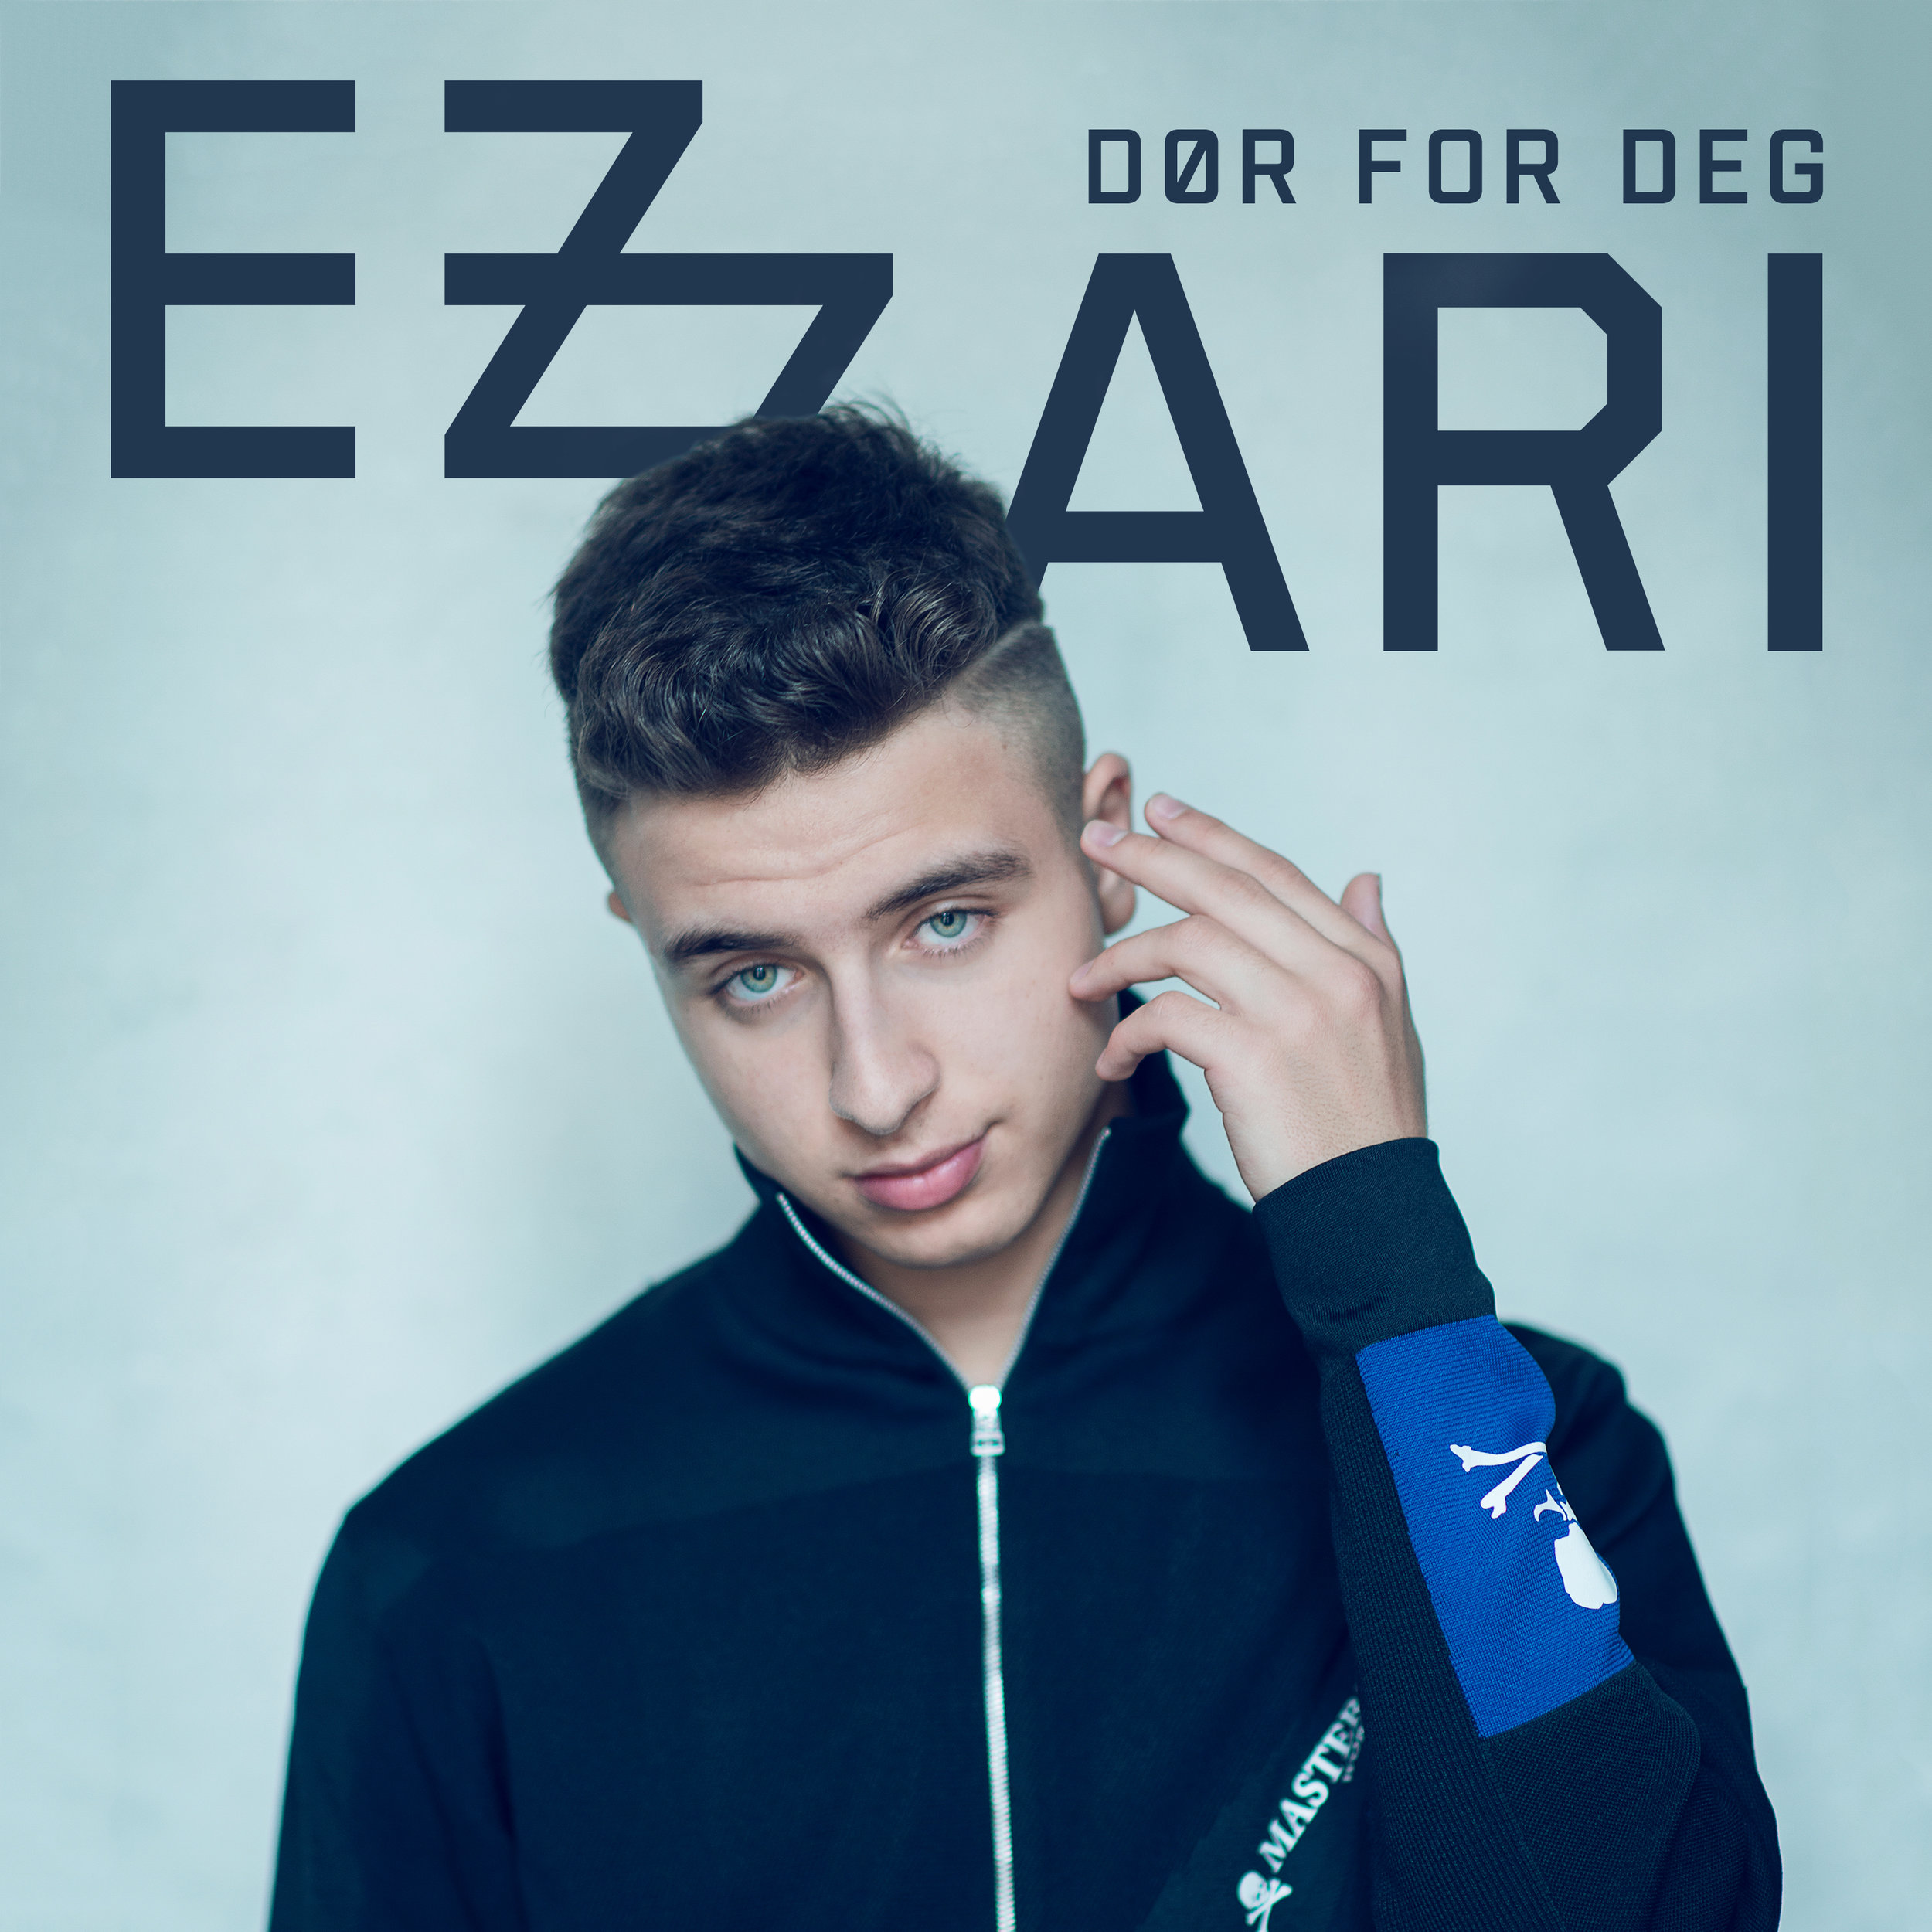 Ezzari-dorfordeg-cover.jpg